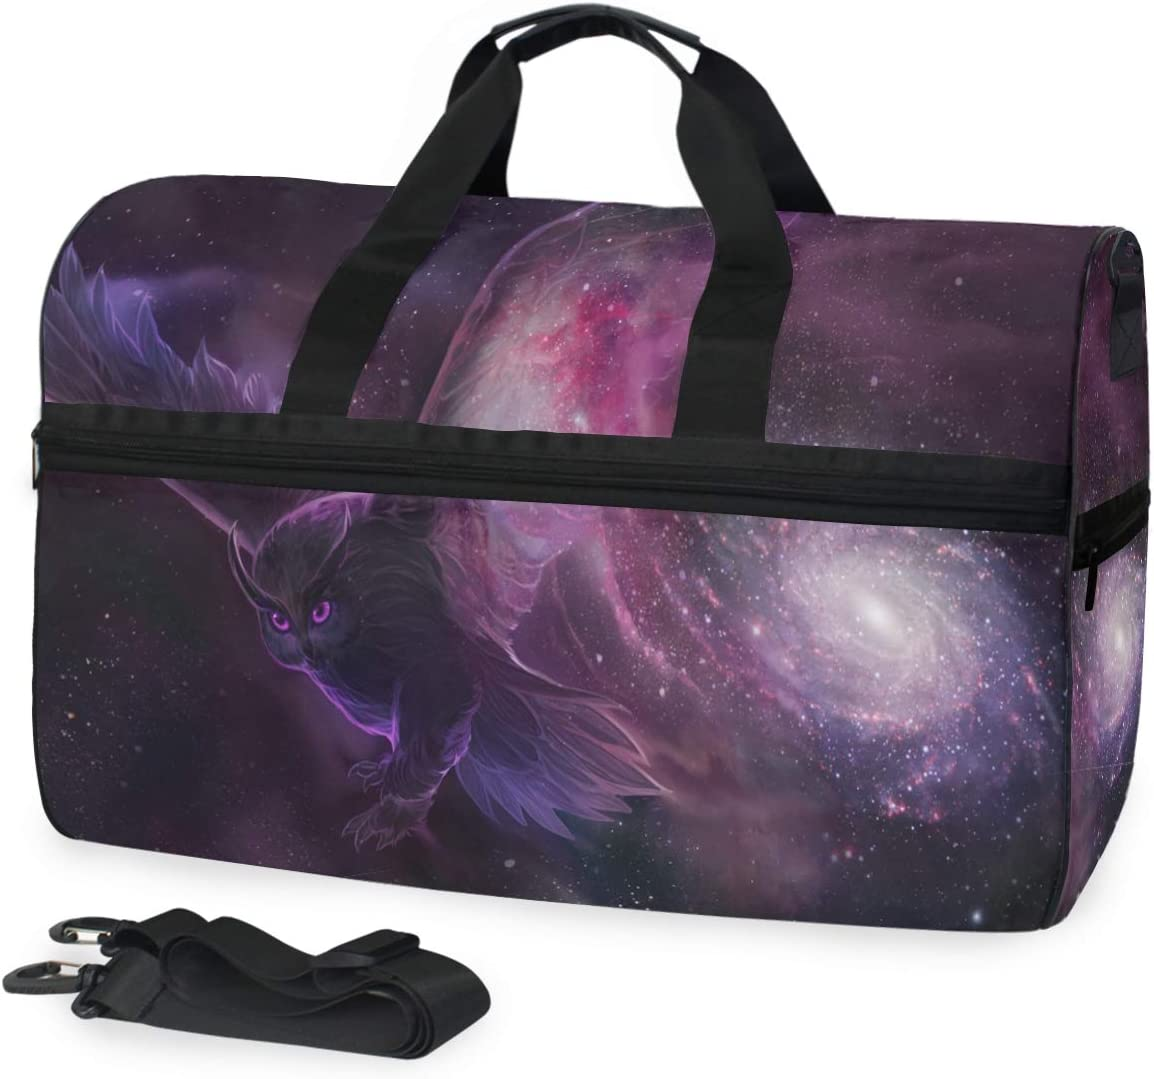 MUOOUM Purple Galaxy Animal Eagle Large Duffle Bags Sports Gym Bag with Shoes Compartment for Men and Women